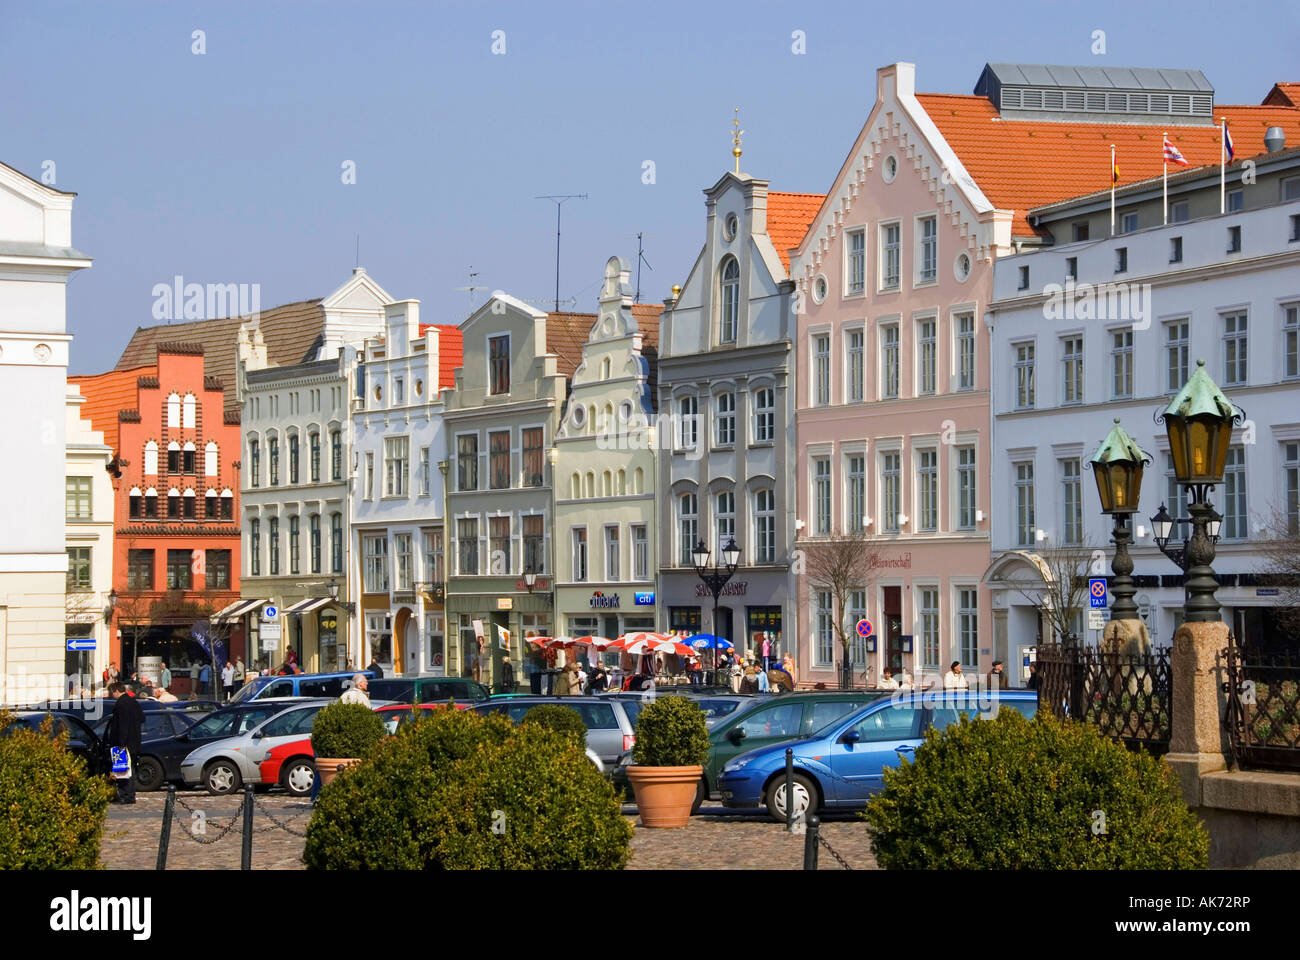 Houses / Wismar - Stock Image